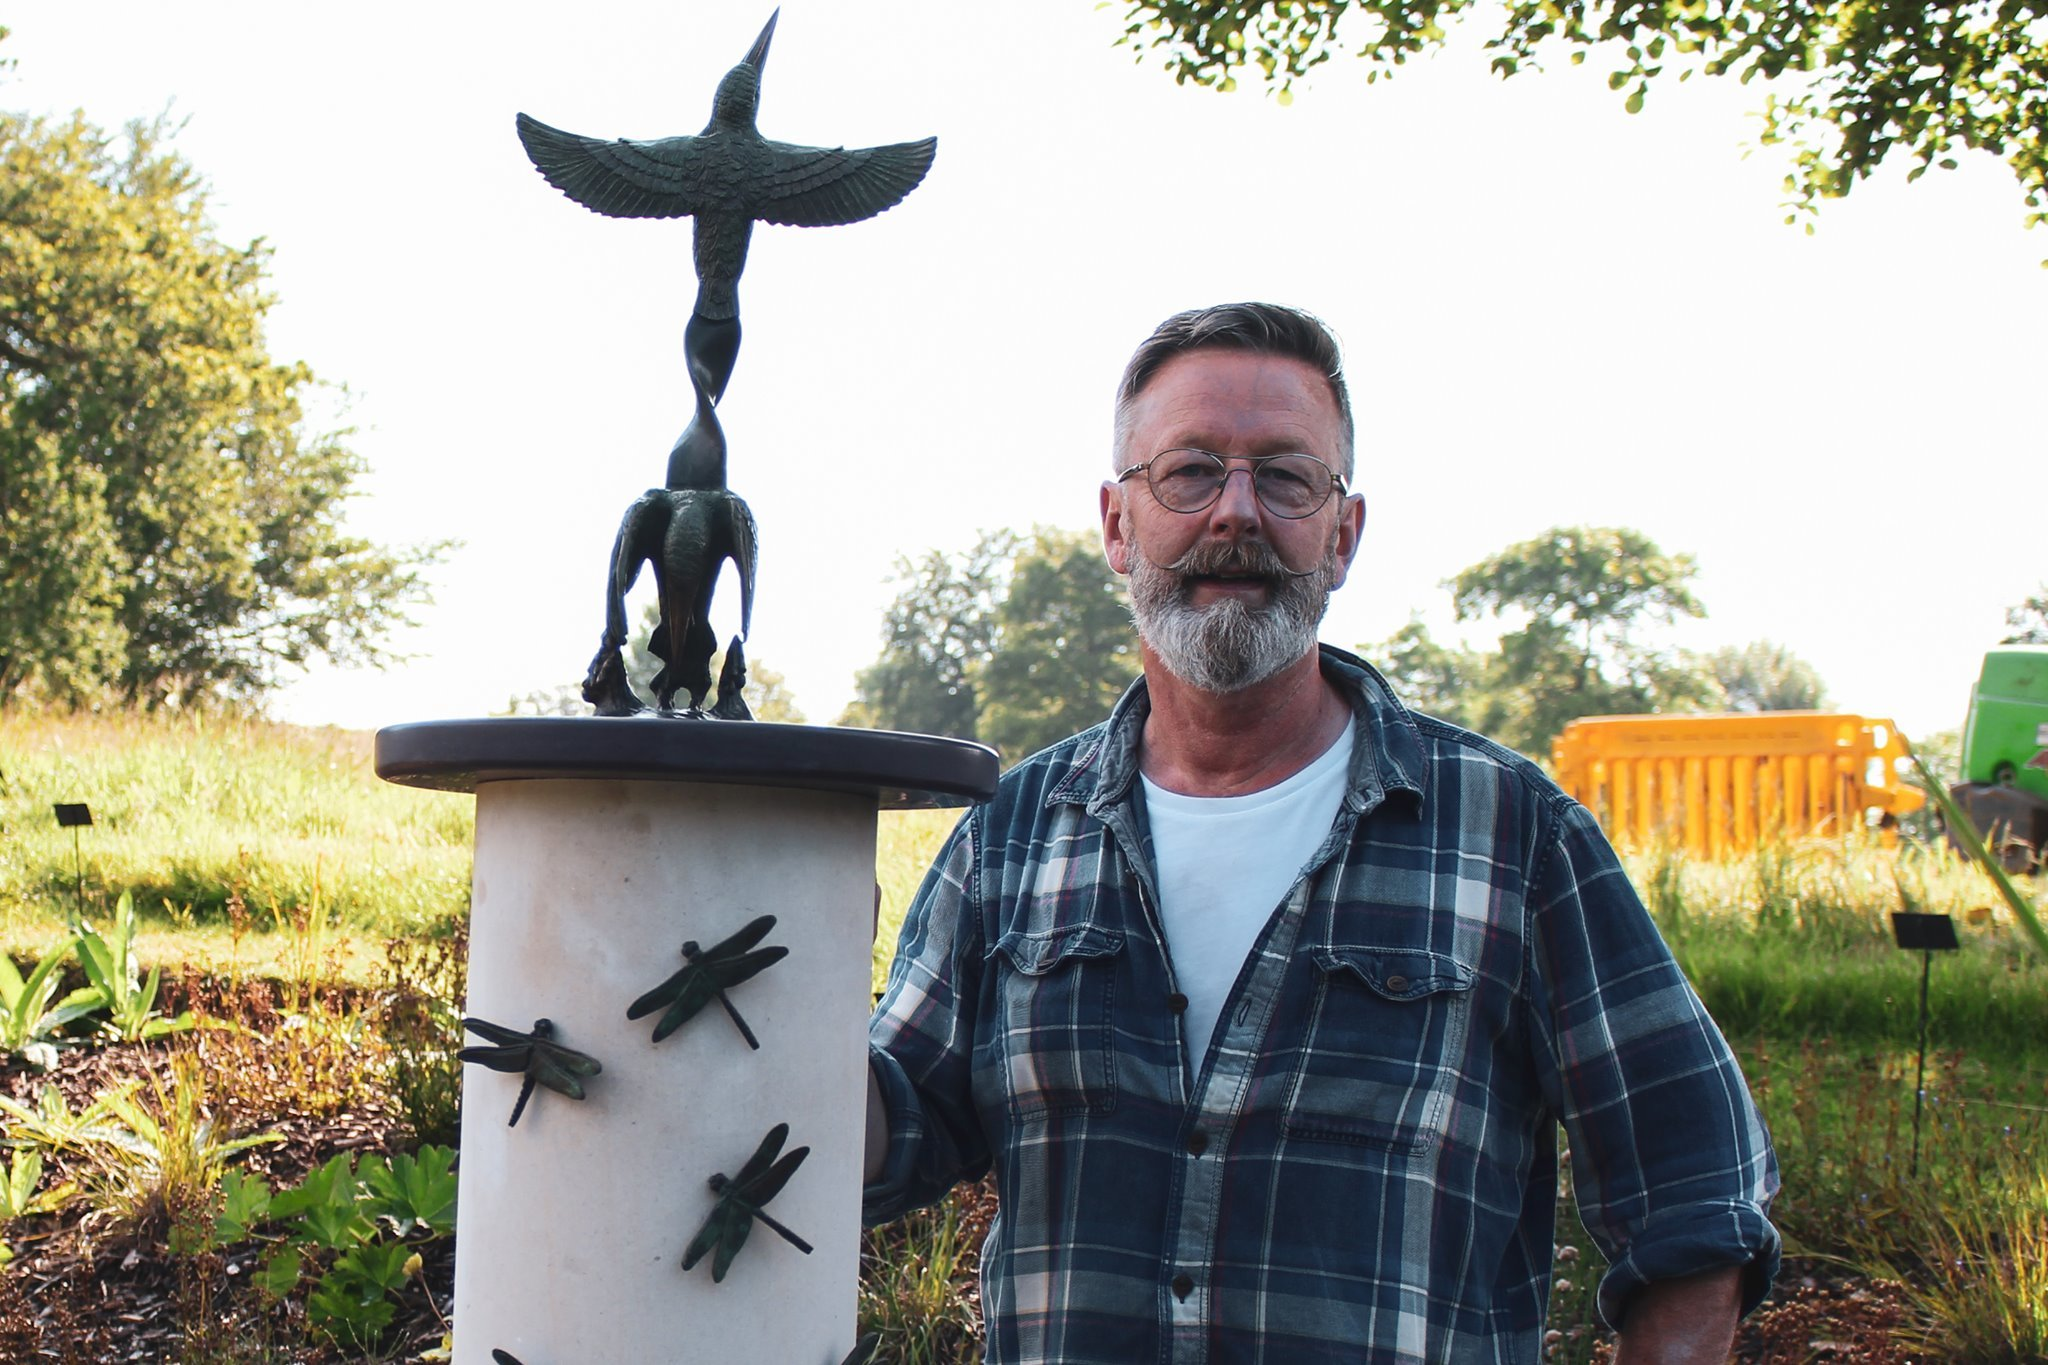 The kingfisher sculpture at the National Botanic Garden of Wales with designer, Paul Clarke